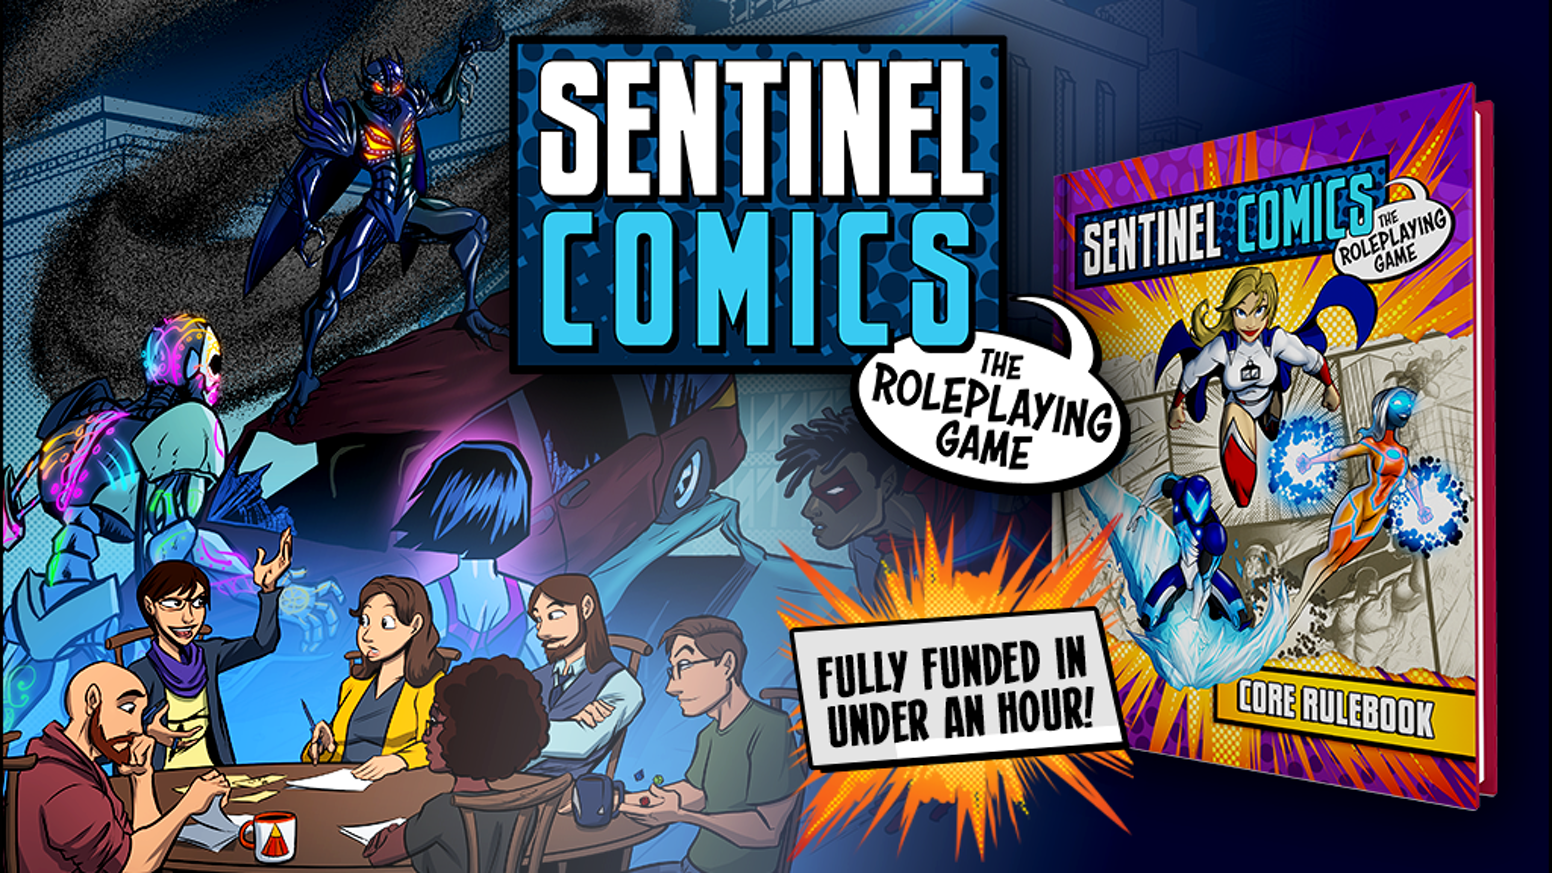 An all-new tabletop roleplaying game system based in the exciting world of Sentinel Comics!